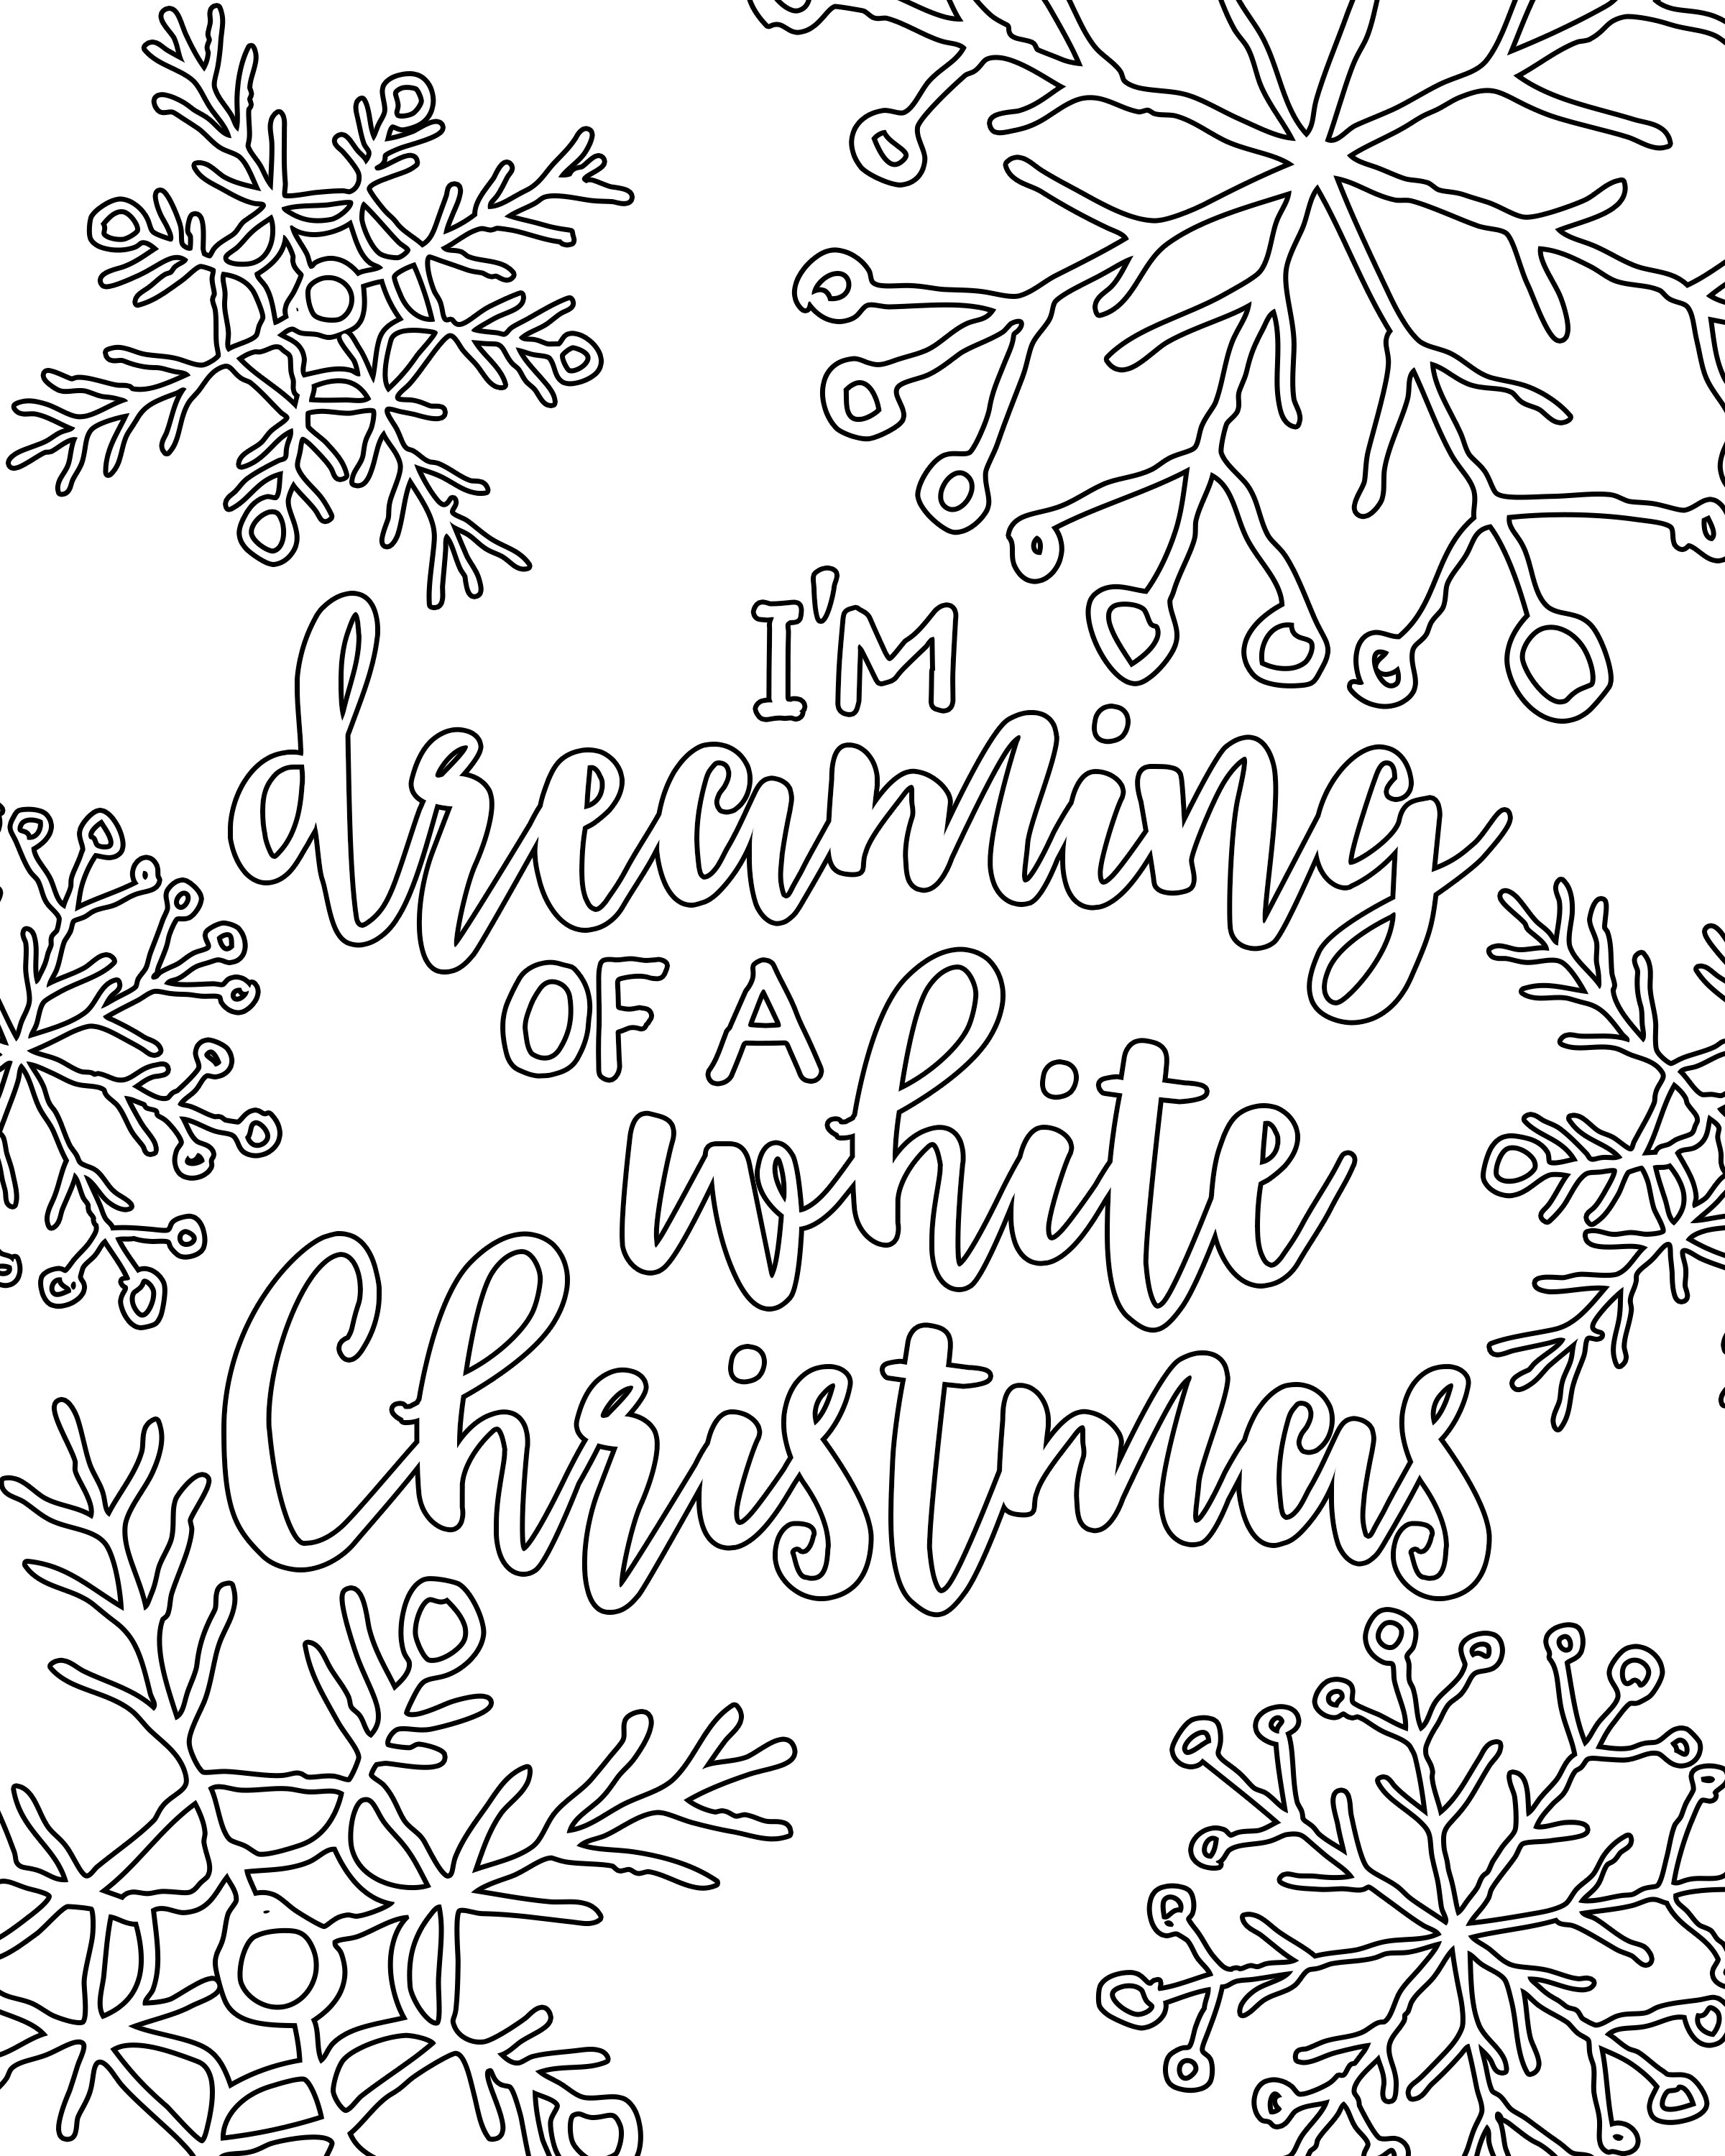 610 Top Christmas Coloring Pages Hd For Free